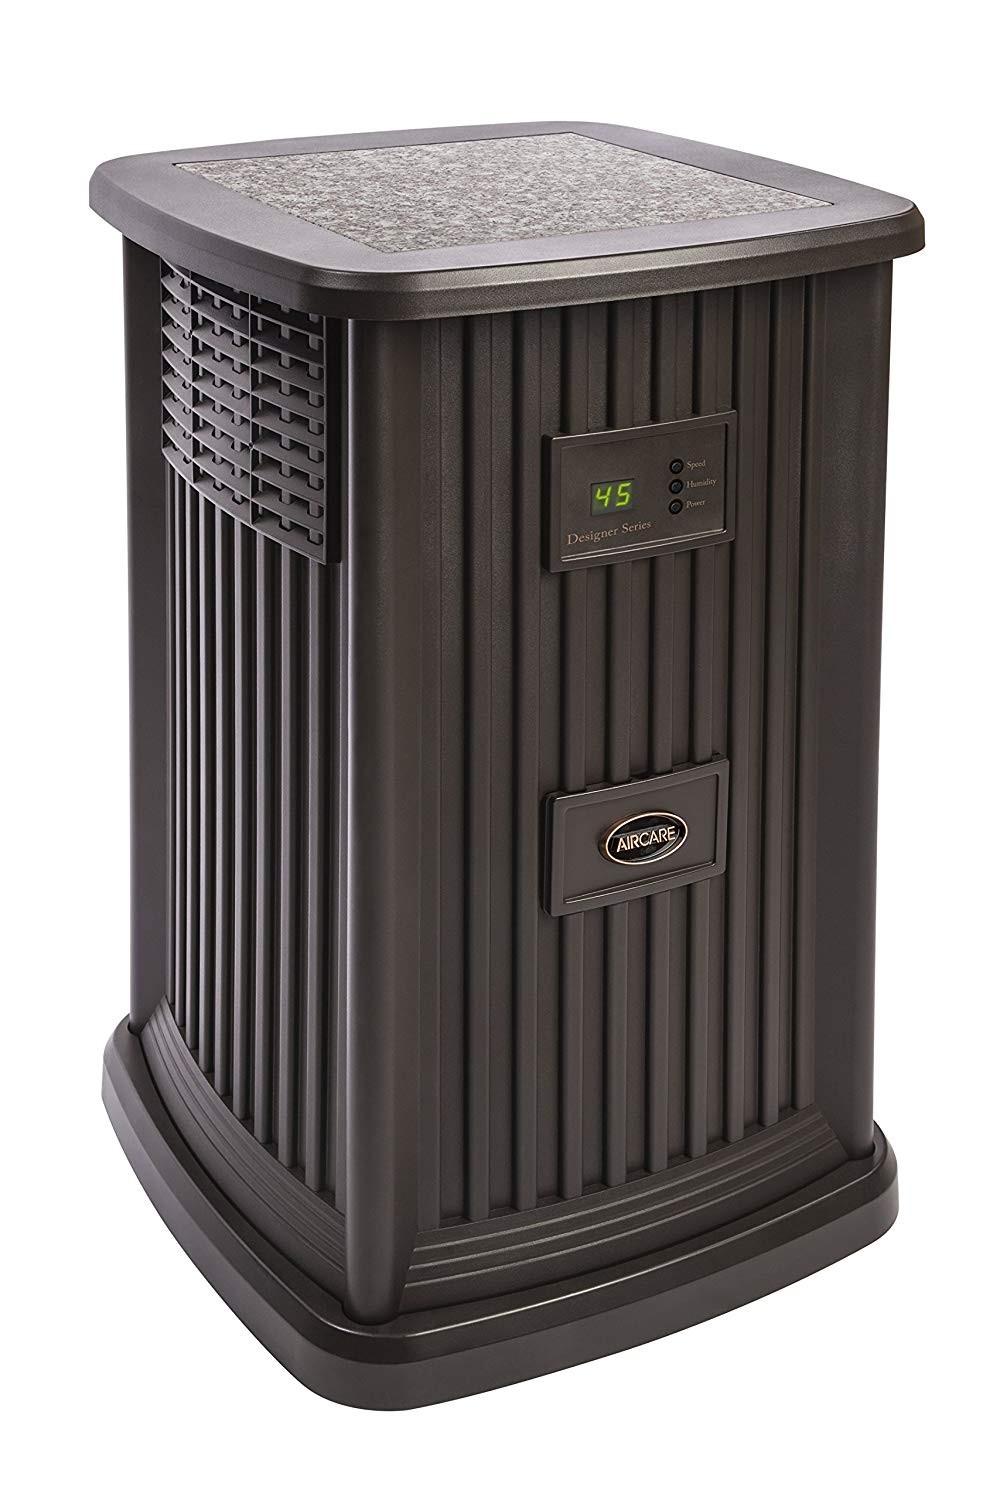 essic air ep9 800 humidifier - best humidifier for condo